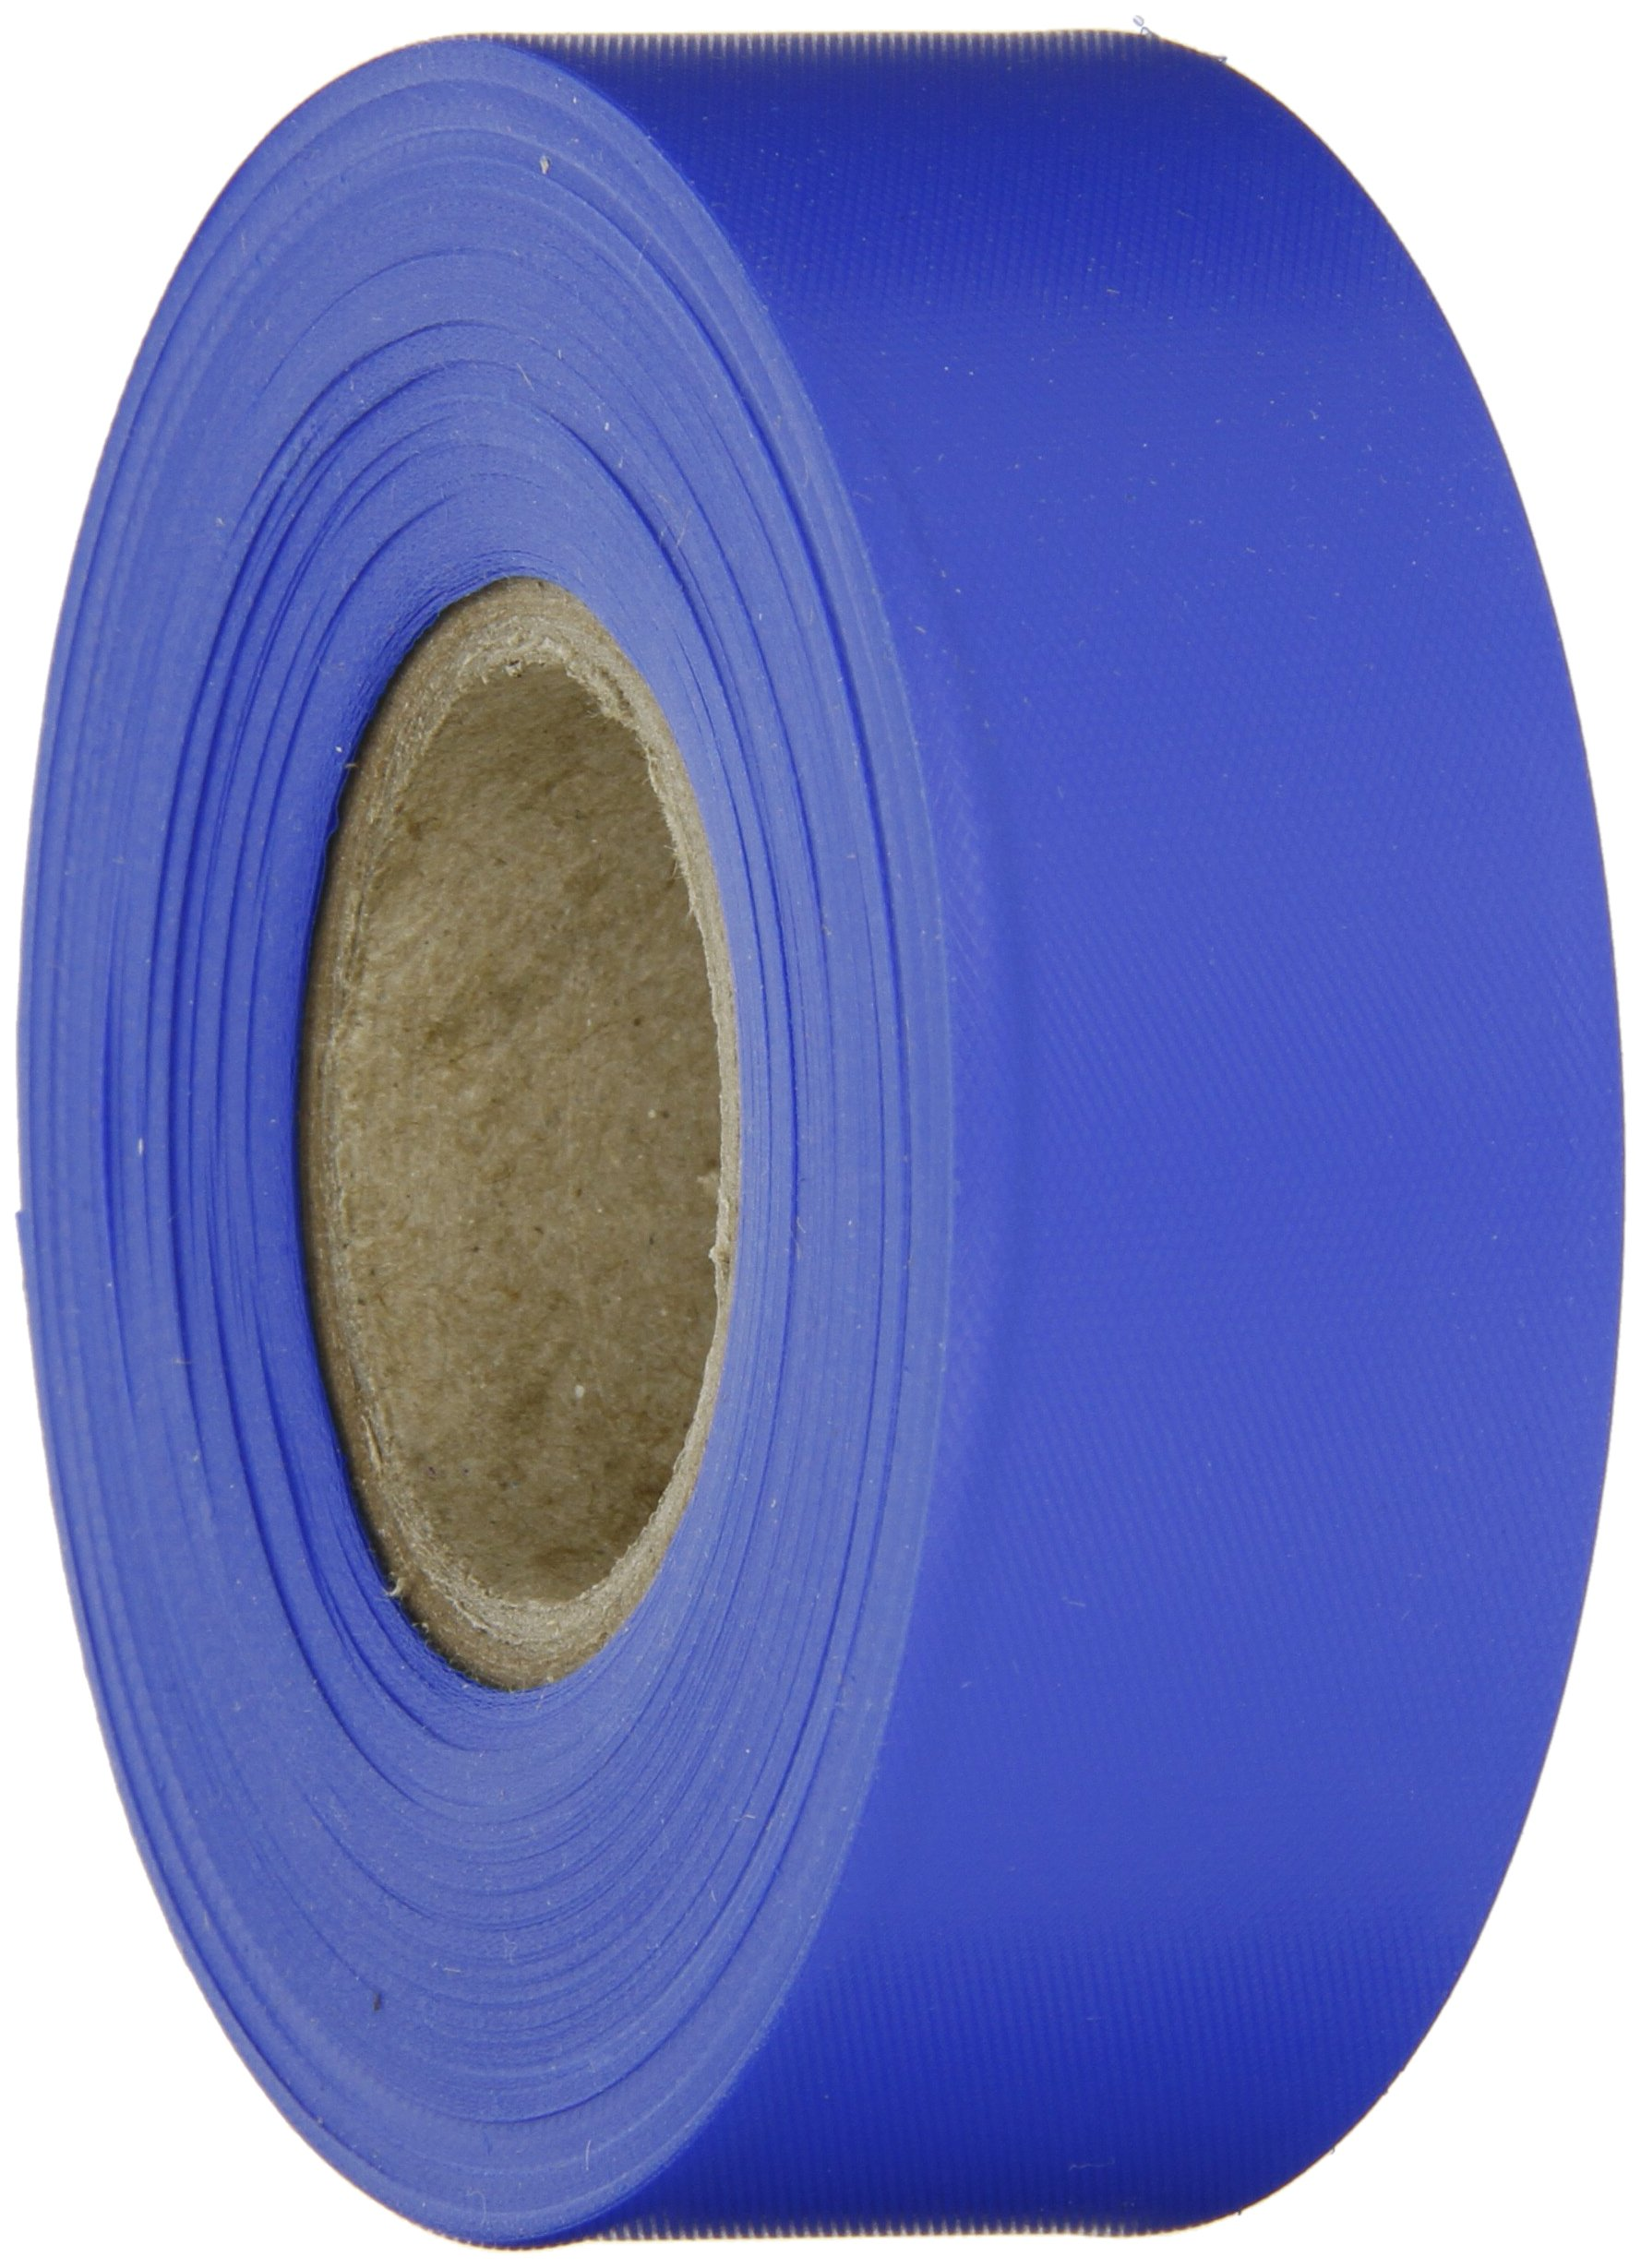 Brady Blue Flagging Tape for Boundaries and Hazardous Areas - Non-Adhesive Tape, 1.188'' Width, 300' Length (Pack of 1) - 58345